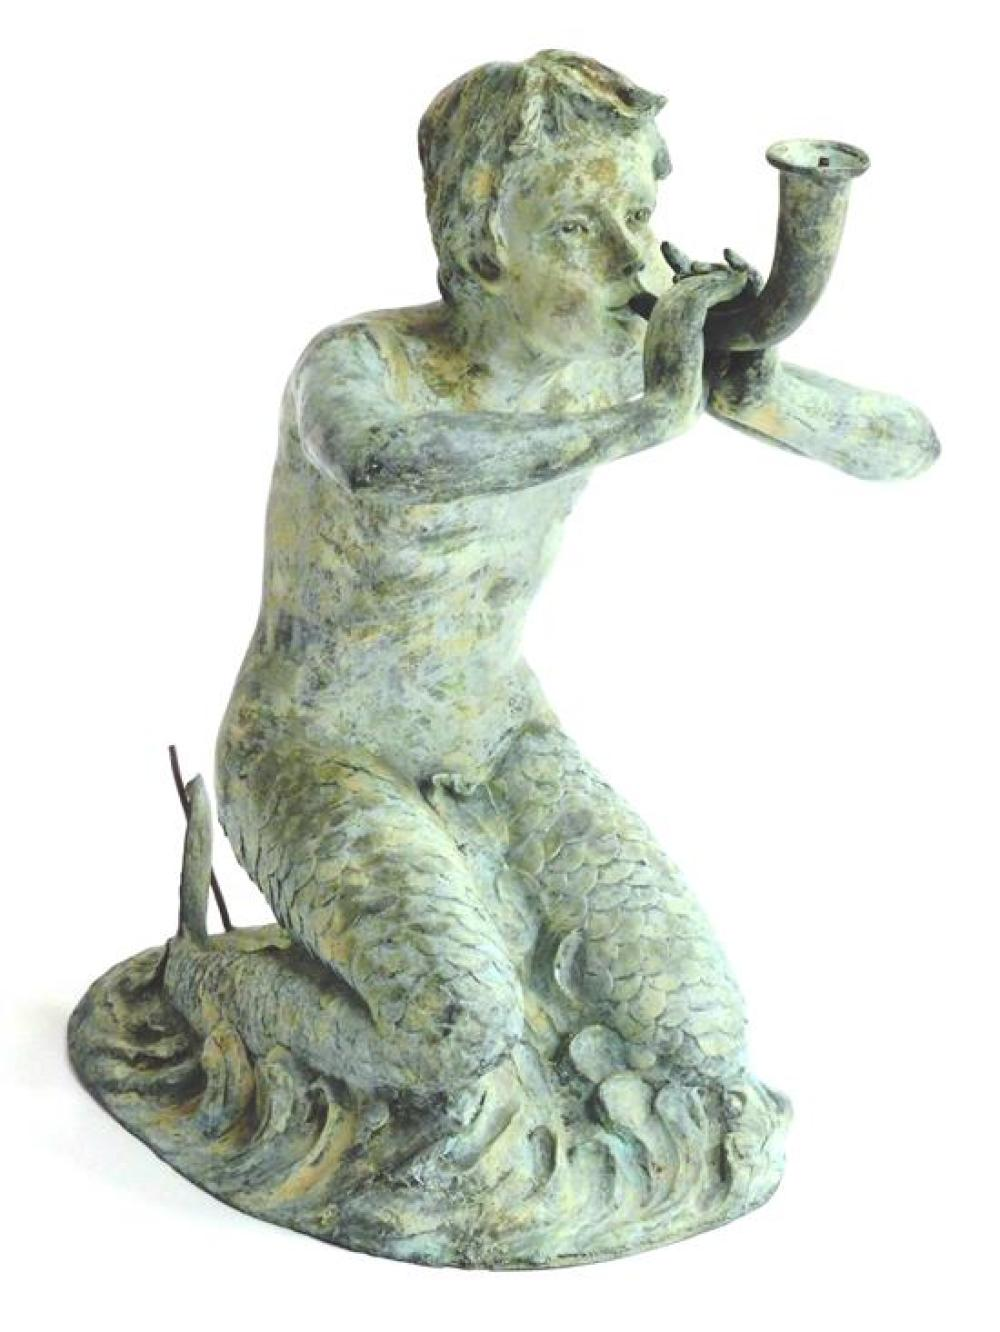 Young boy siren garden sculpture fountain, metal, with two tails kneeling in breaking waves, he blows a horn which is where copper t...